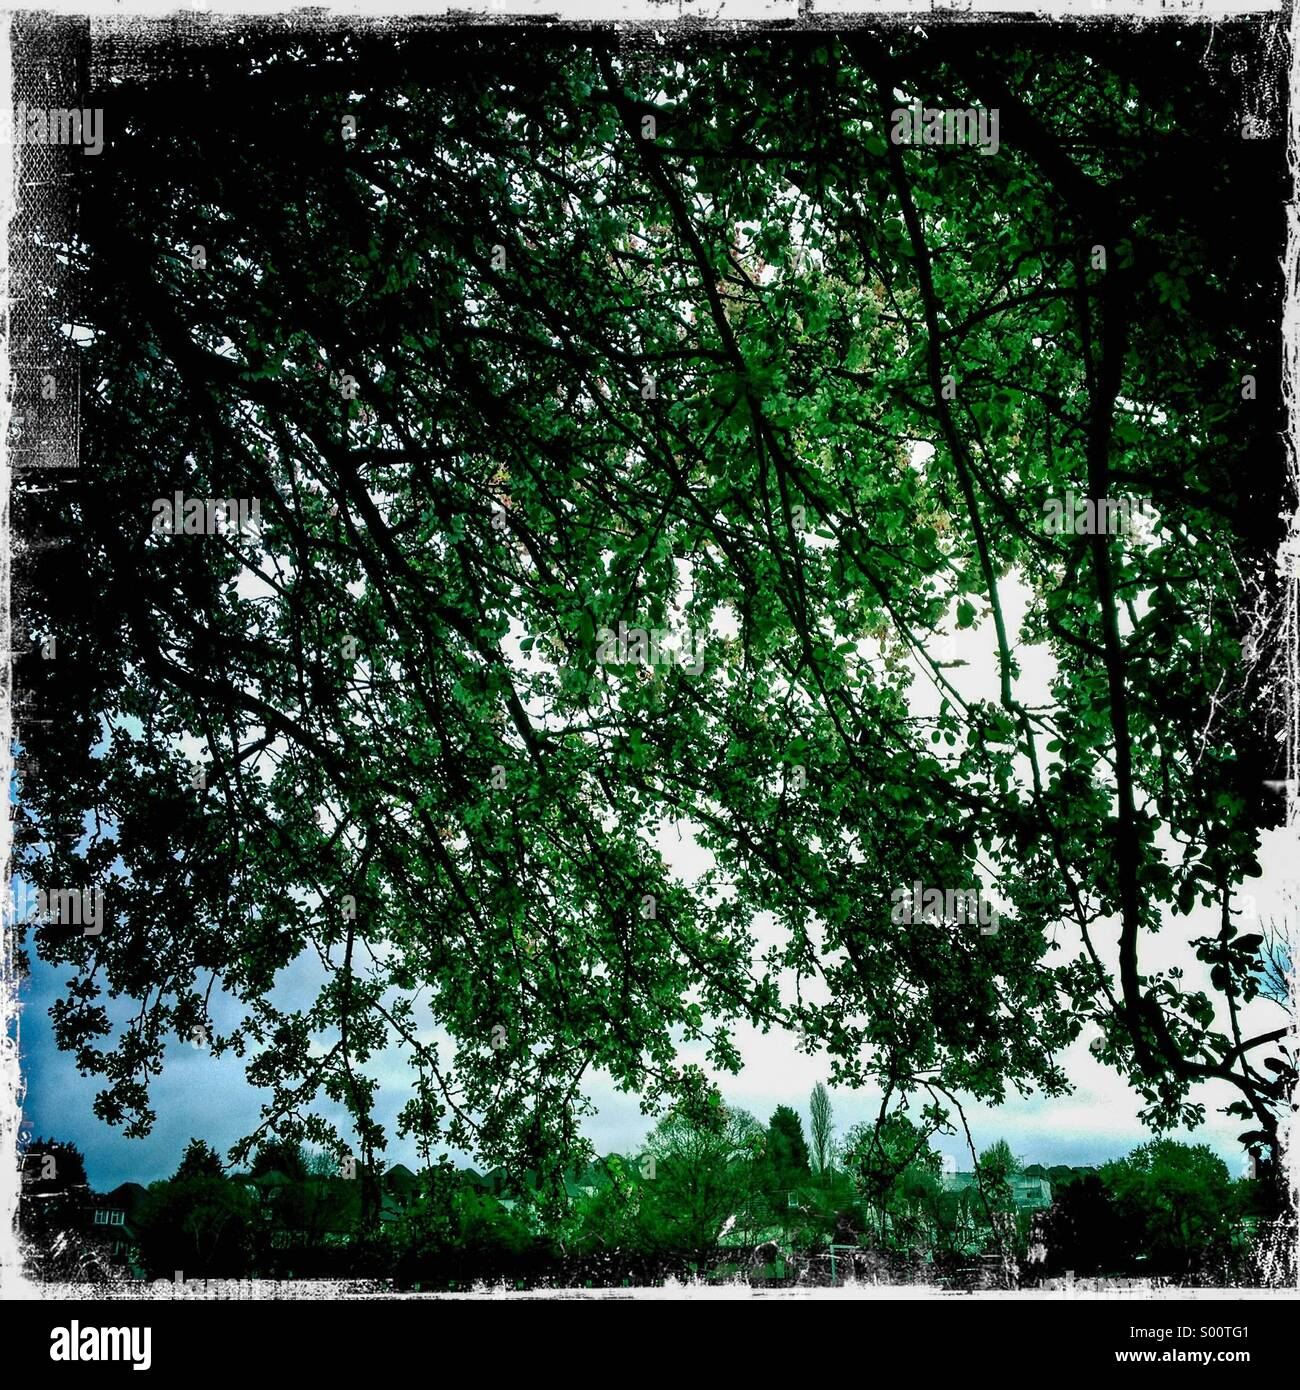 Looking up through oak tree branches. Hipstamatic  photo with white borders. - Stock Image